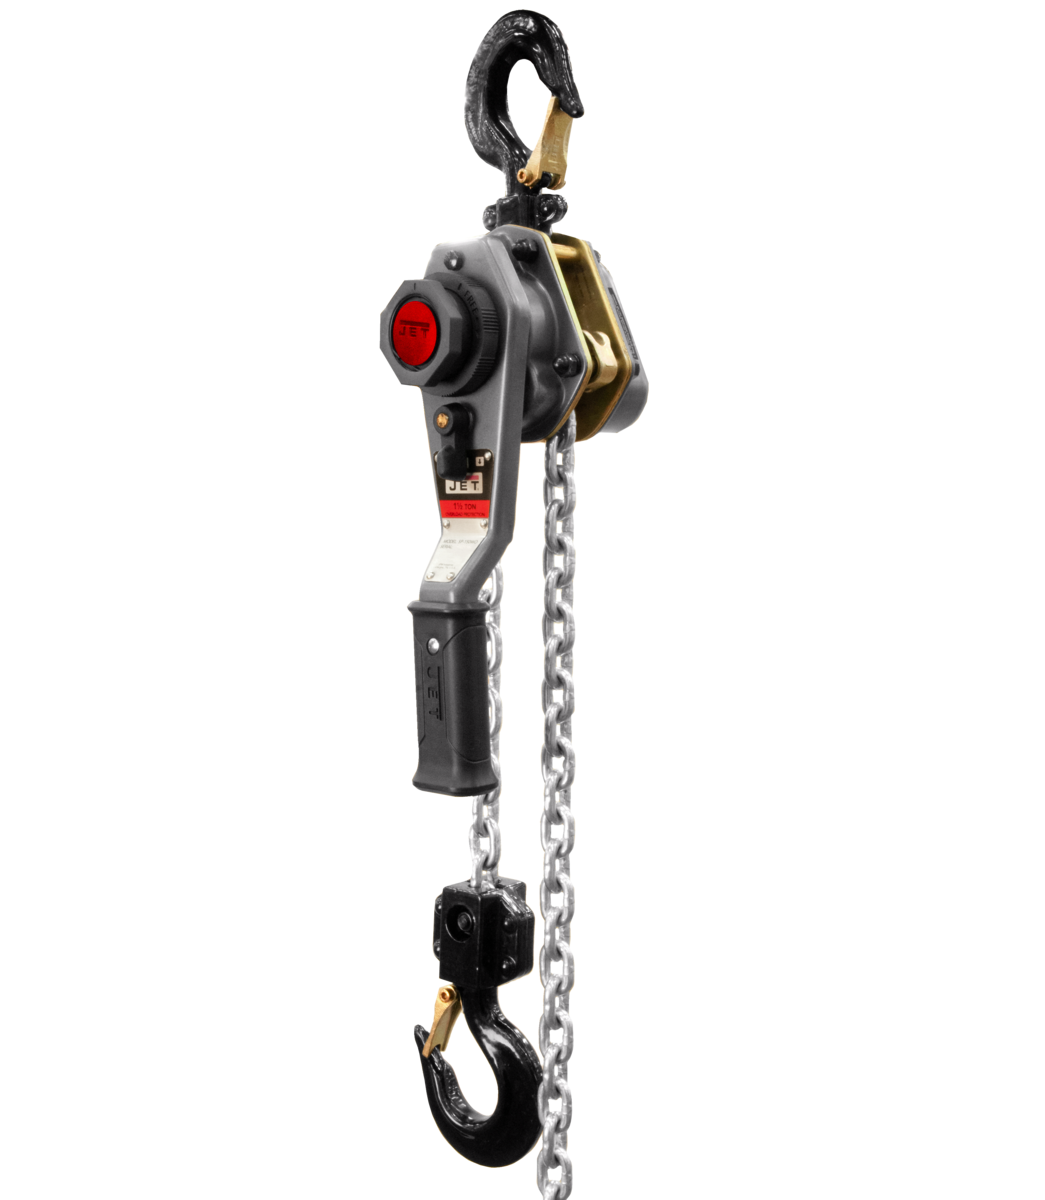 JLH-150WO-15, 1-1/2 Ton, LEVER HOIST with  15' LIFT with Overload Protection